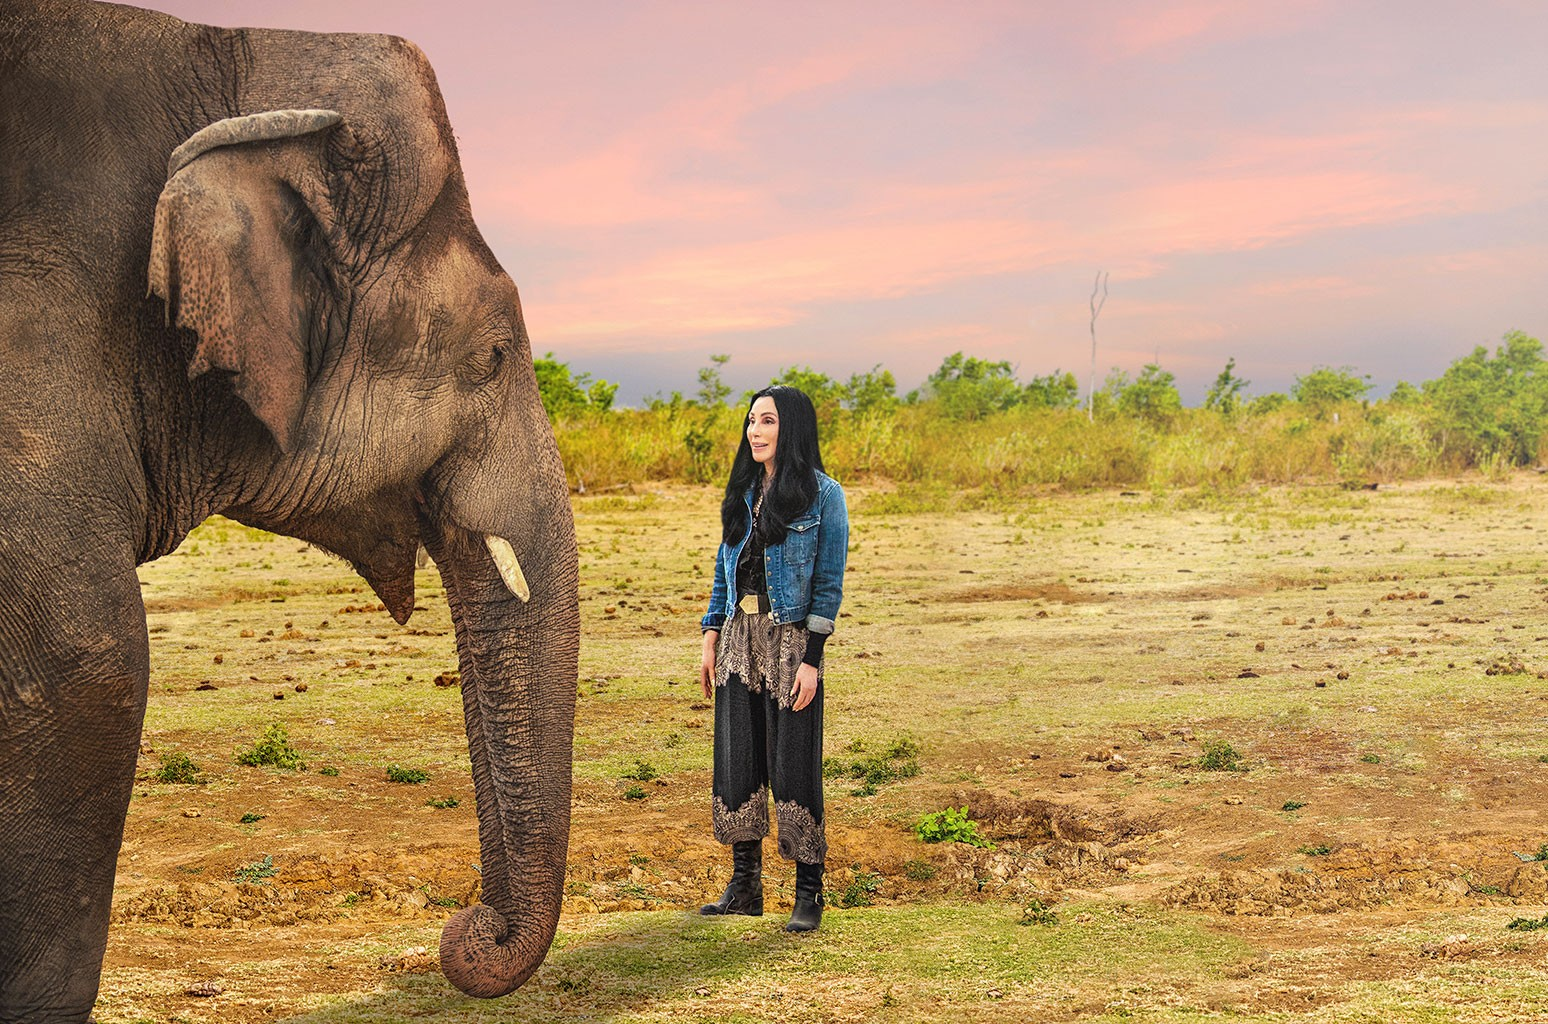 Cher Explains the Fight for Kaavan in 'Cher & The Loneliest Elephant' Trailer: 'He Was Suffering